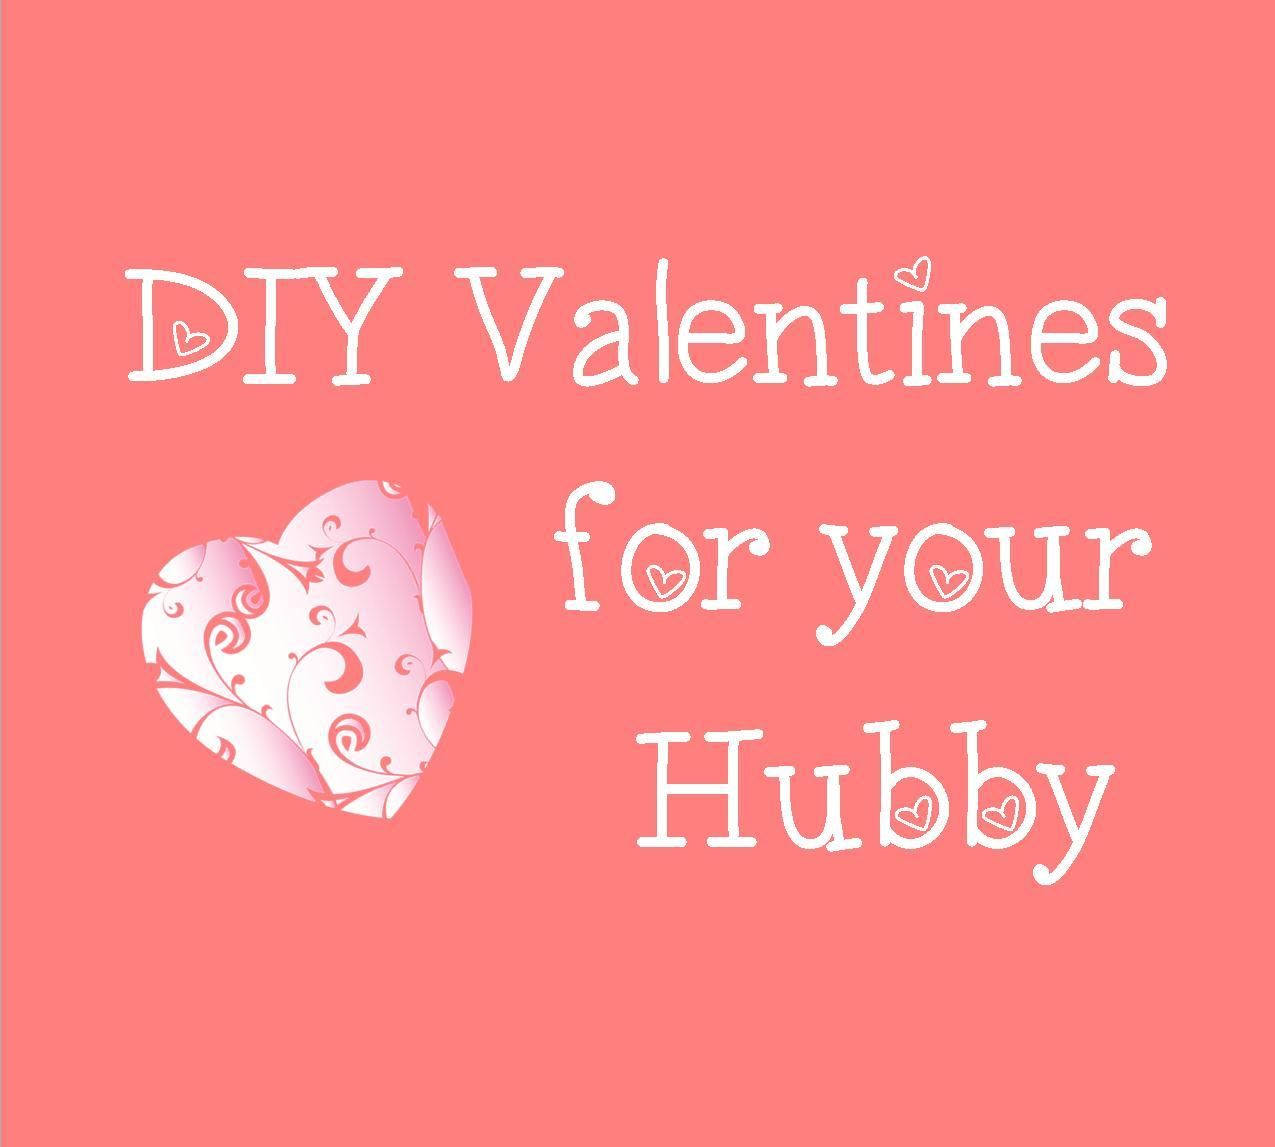 crafty wi mama valentines for the hubby i like homemade valentine gifts for husband